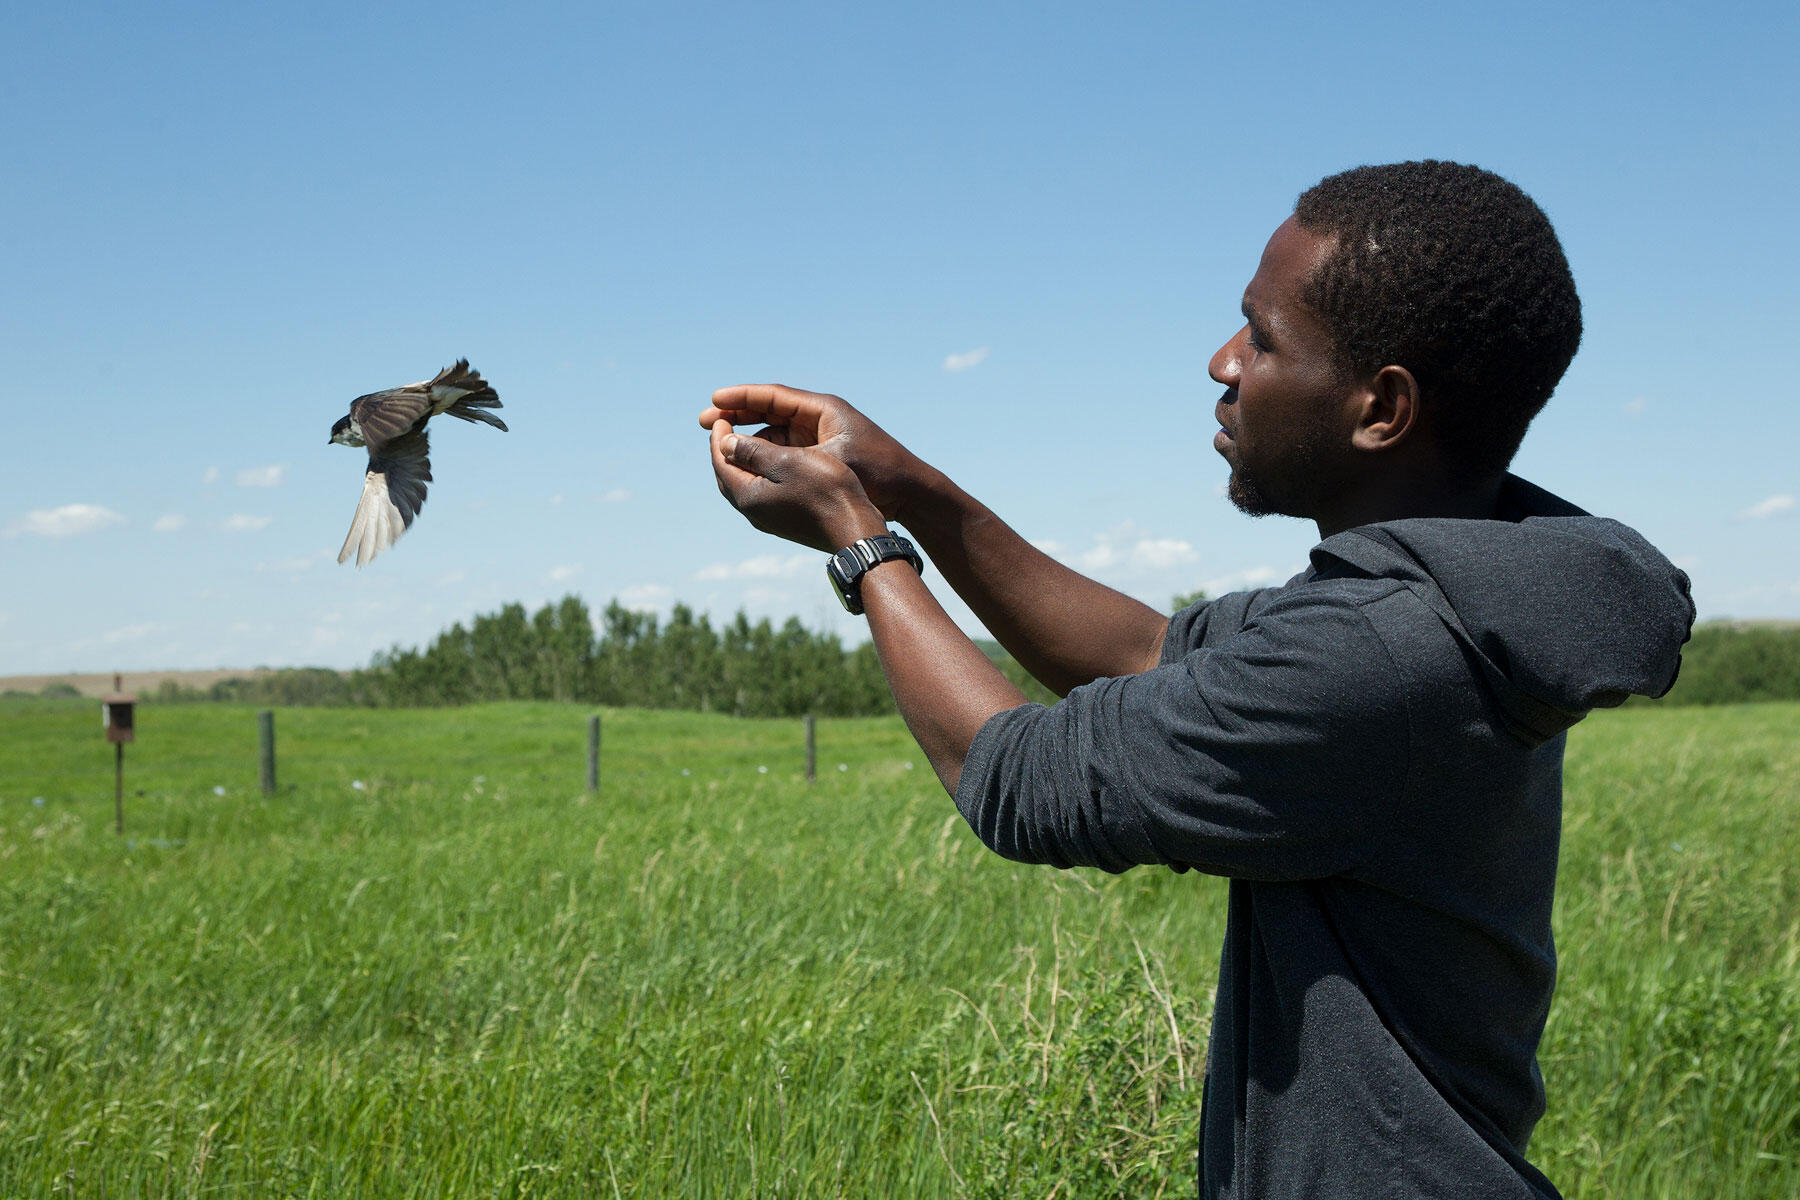 Bagonluri releases a Tree Swallow after having weighed and measured it. Connor Stefanison